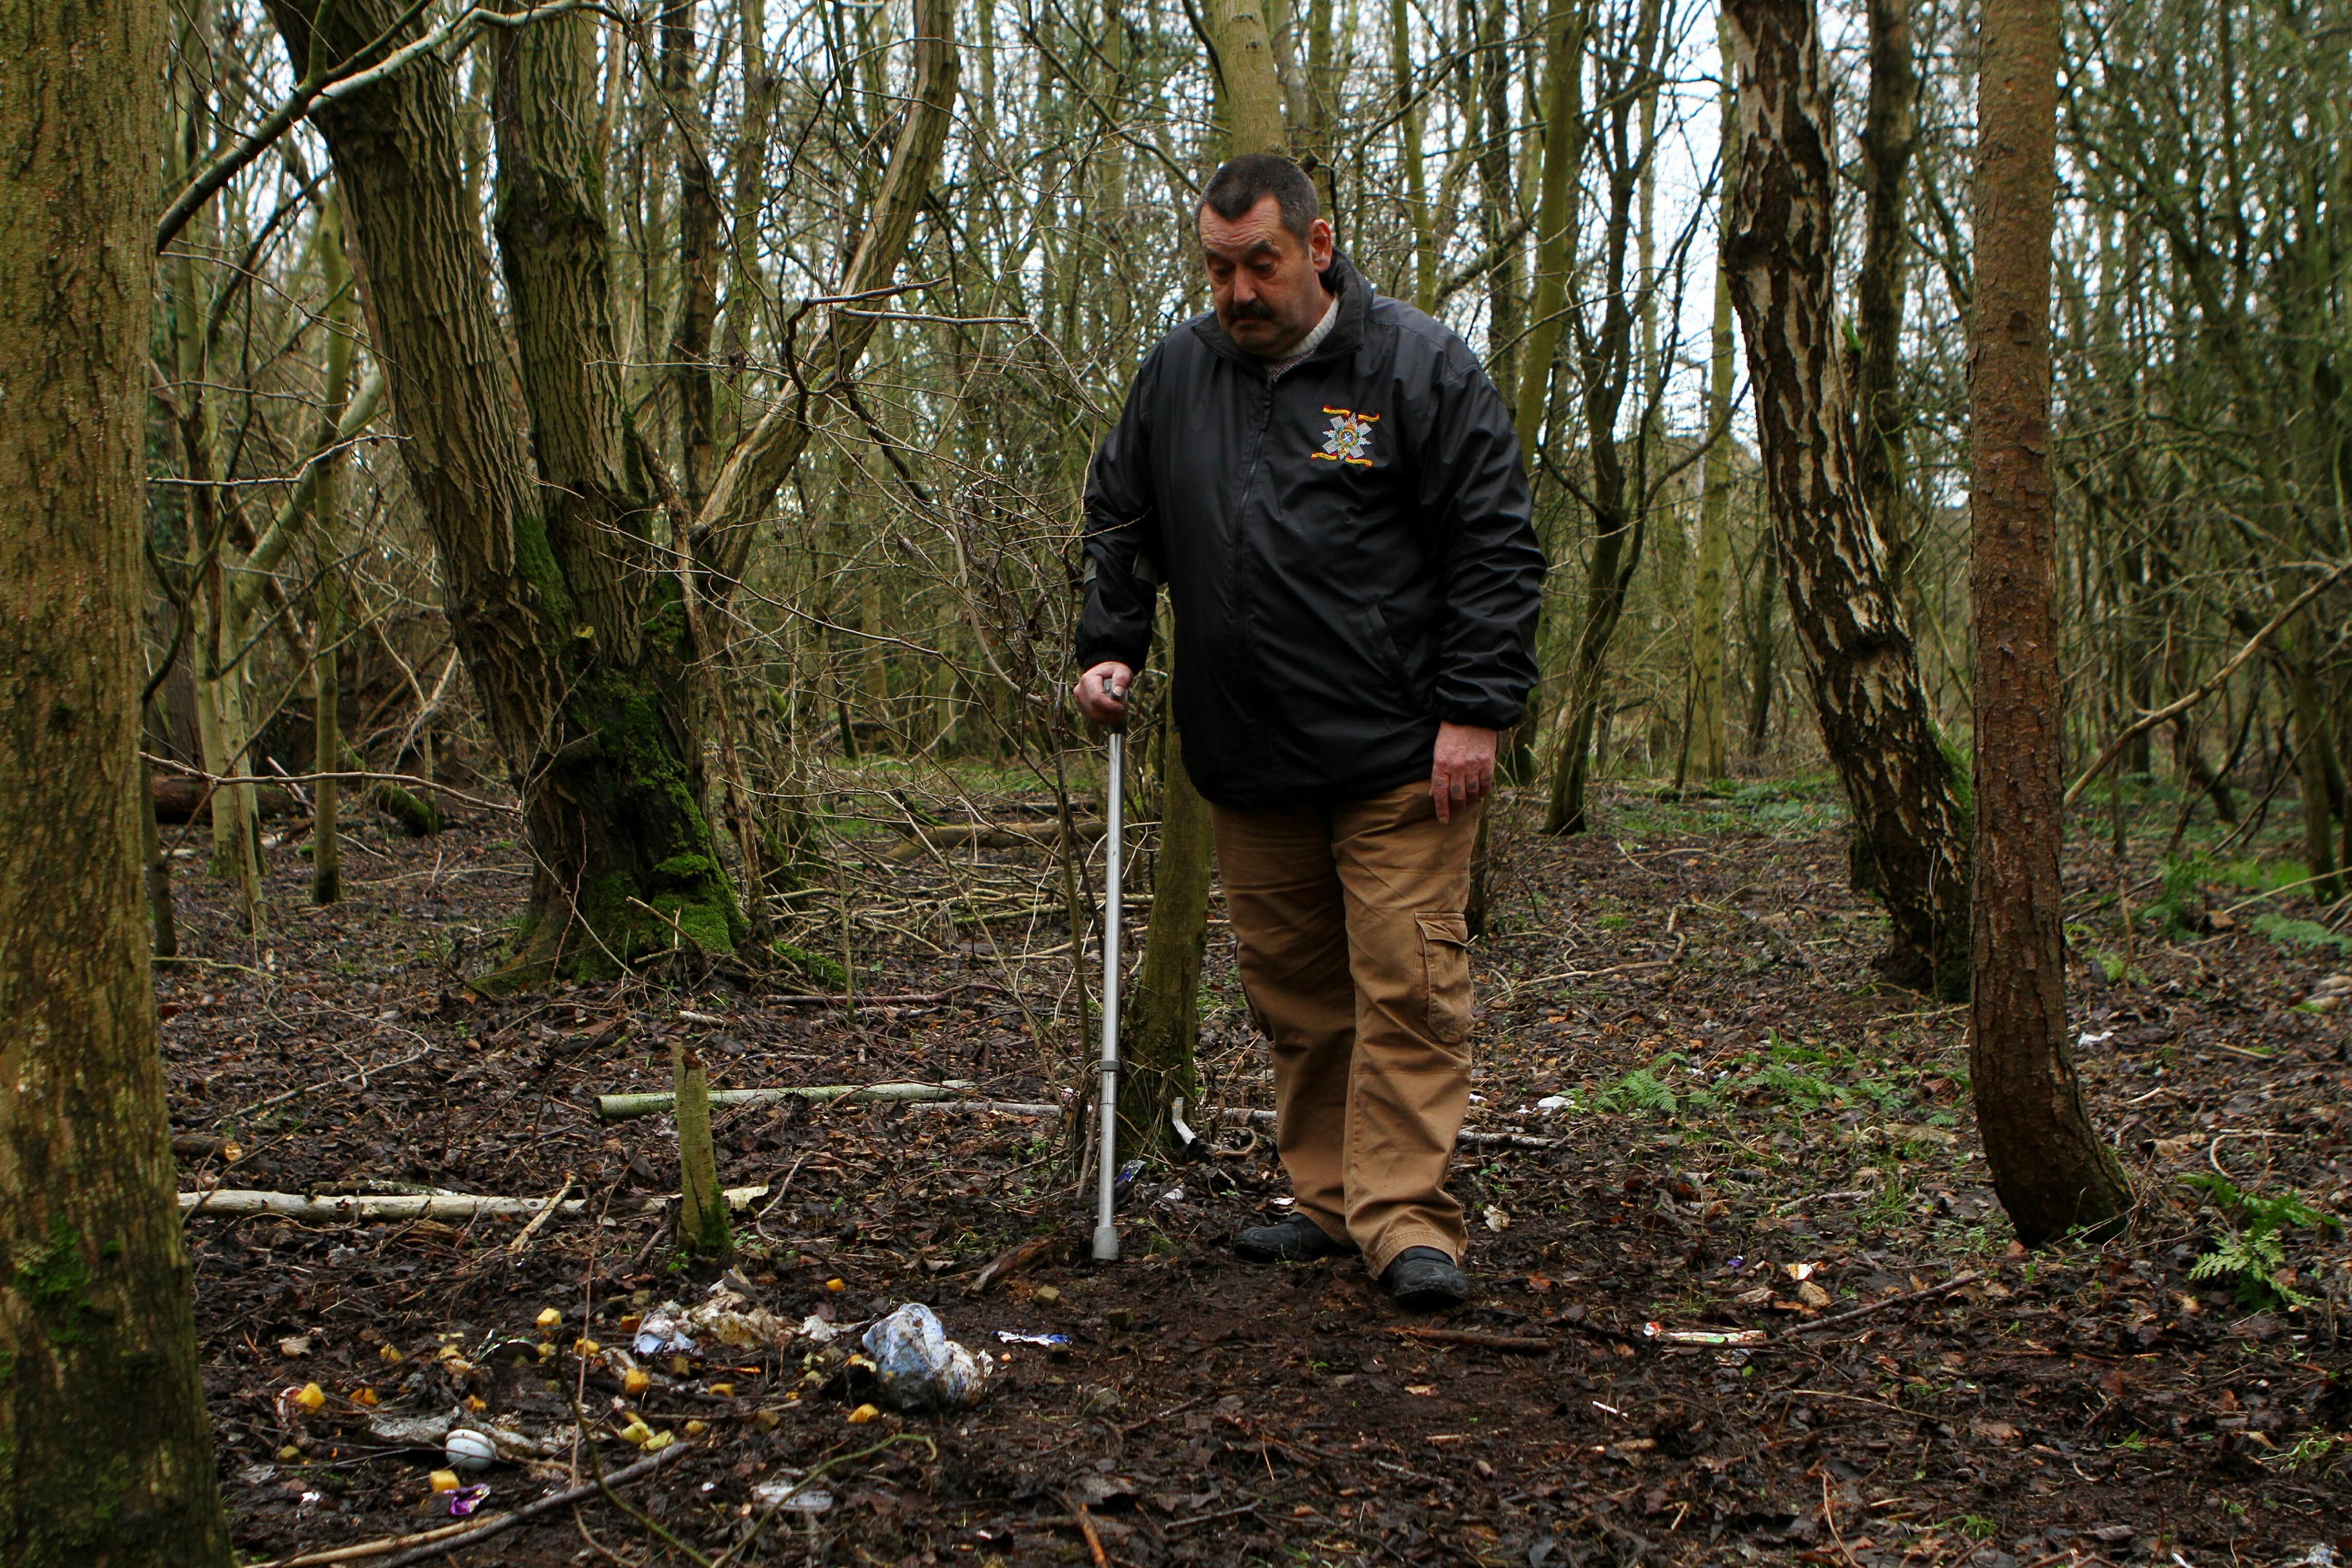 Mr Scobie examines the flytipping in the woodland near Brodie Court.